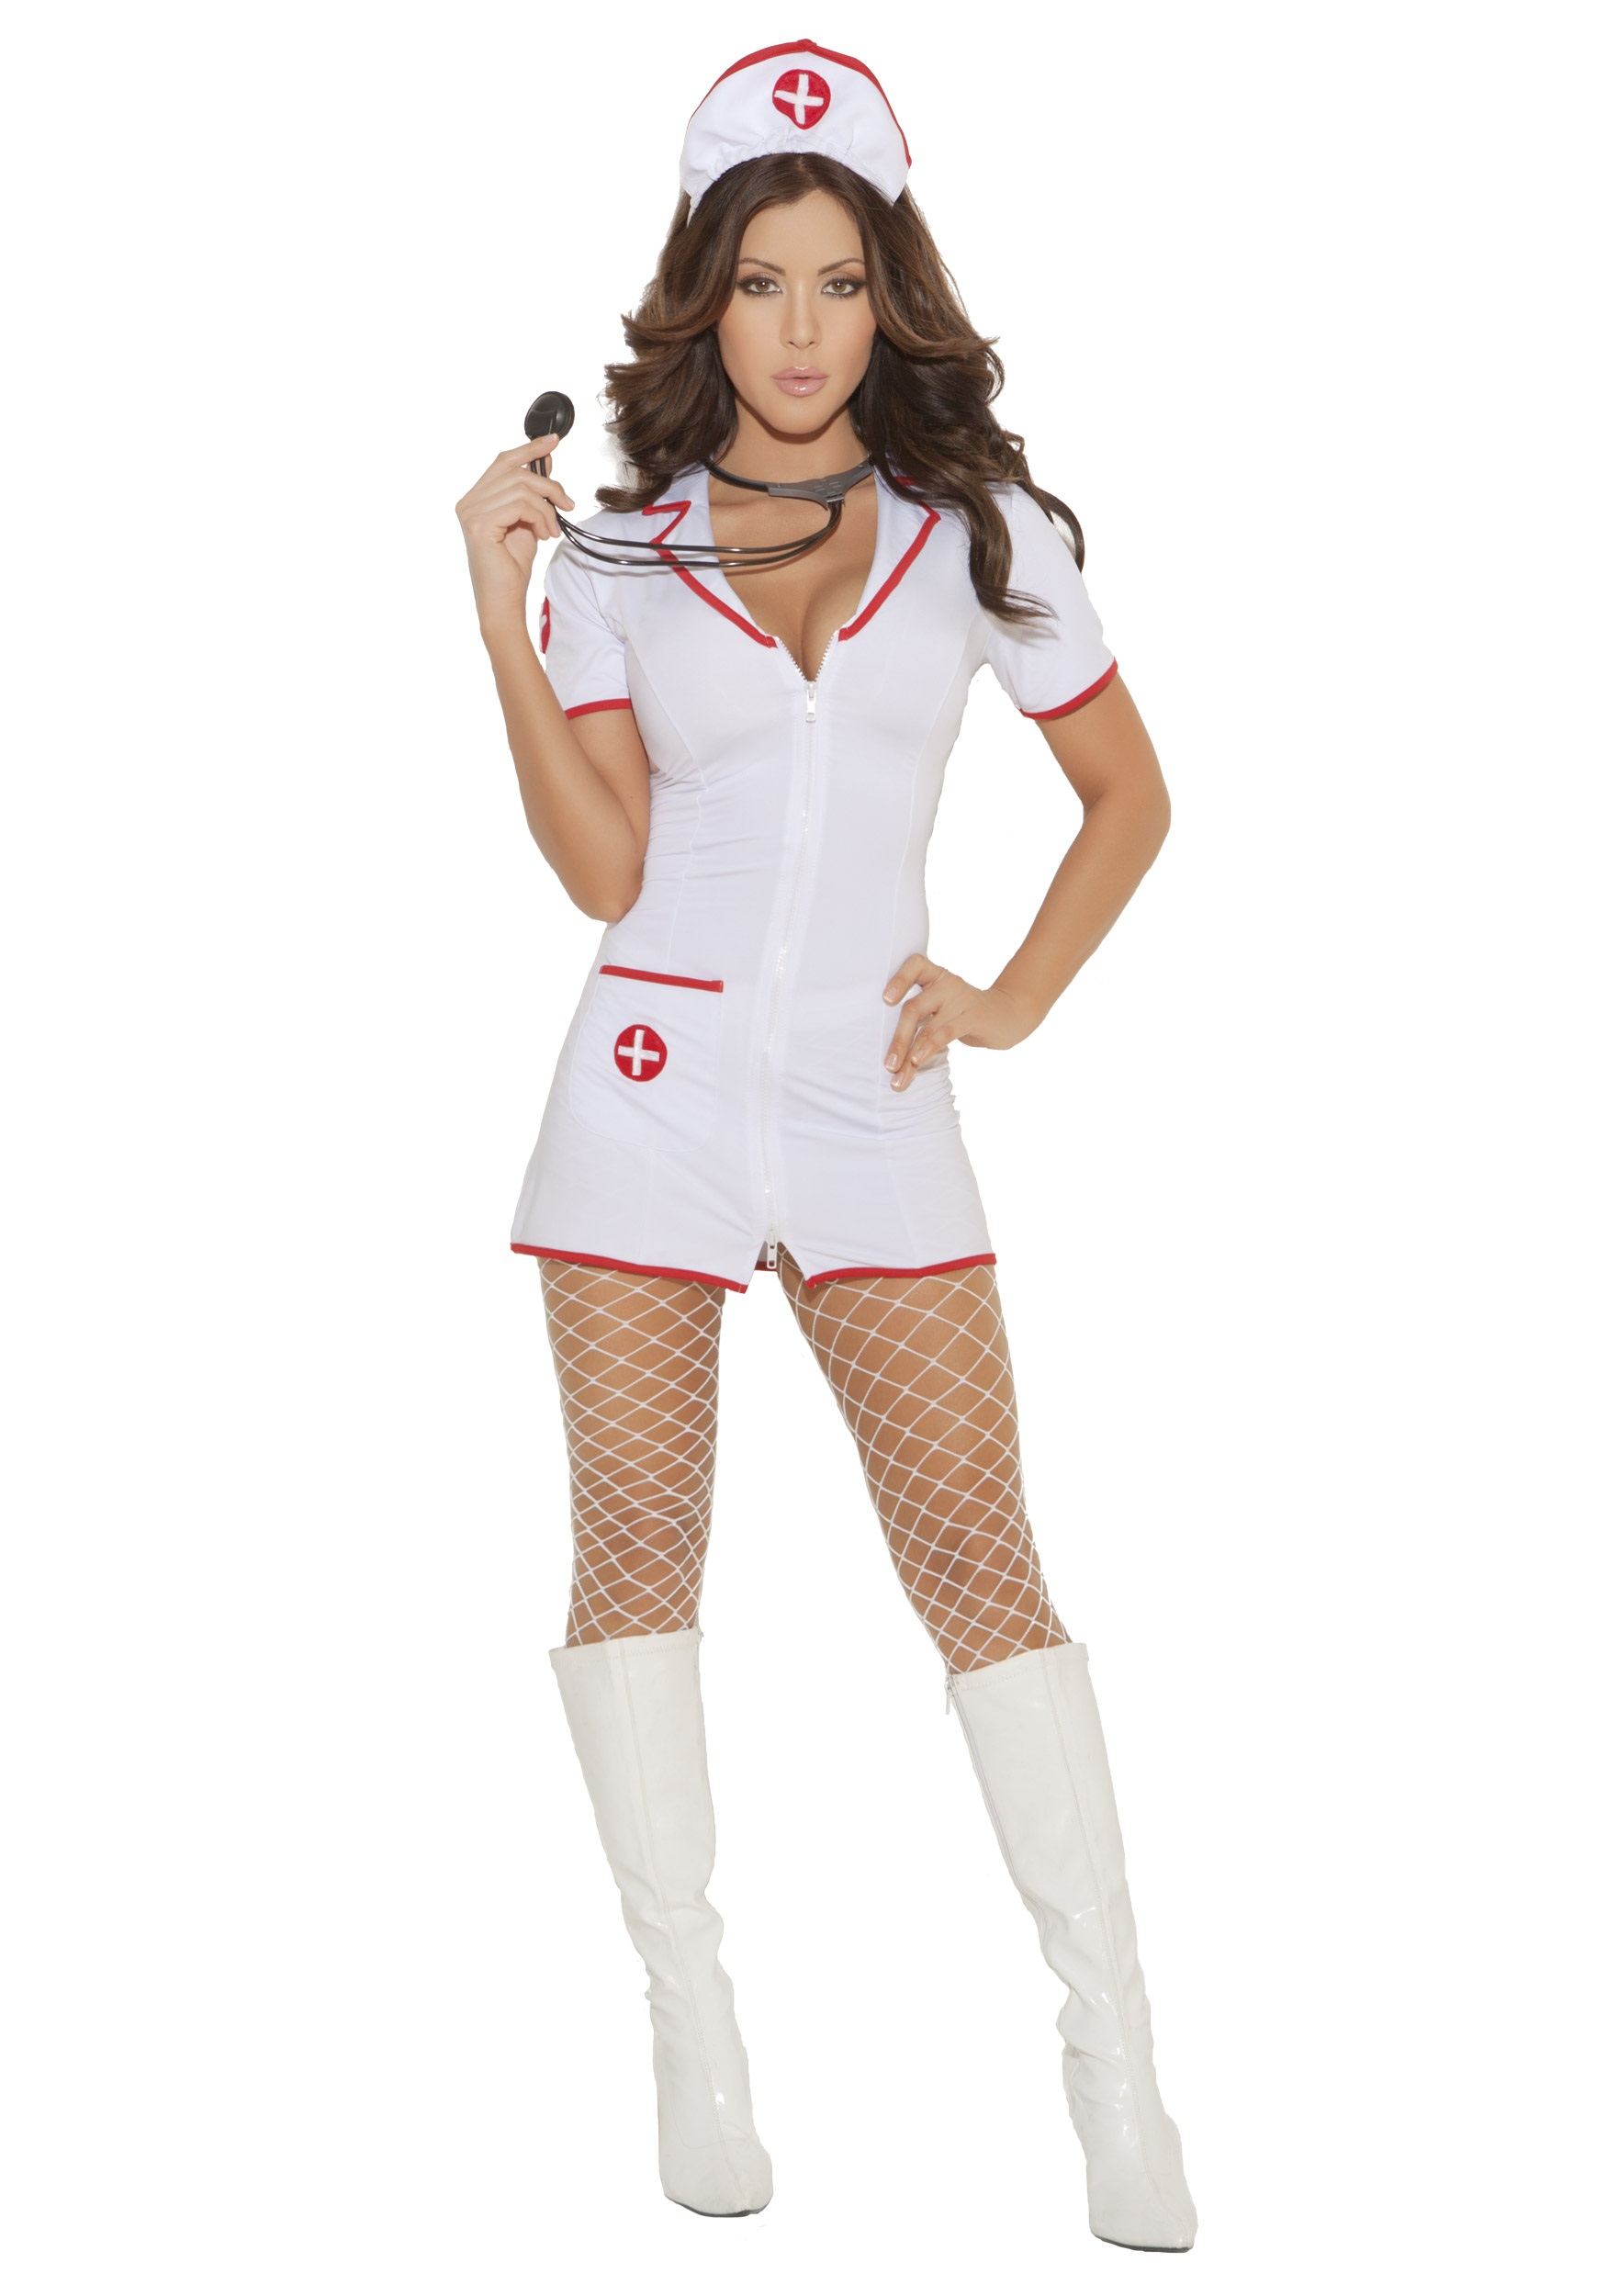 0a670d7b3dbd5 Sexy Halloween Costumes for Women and Men - Sexy Costume Ideas